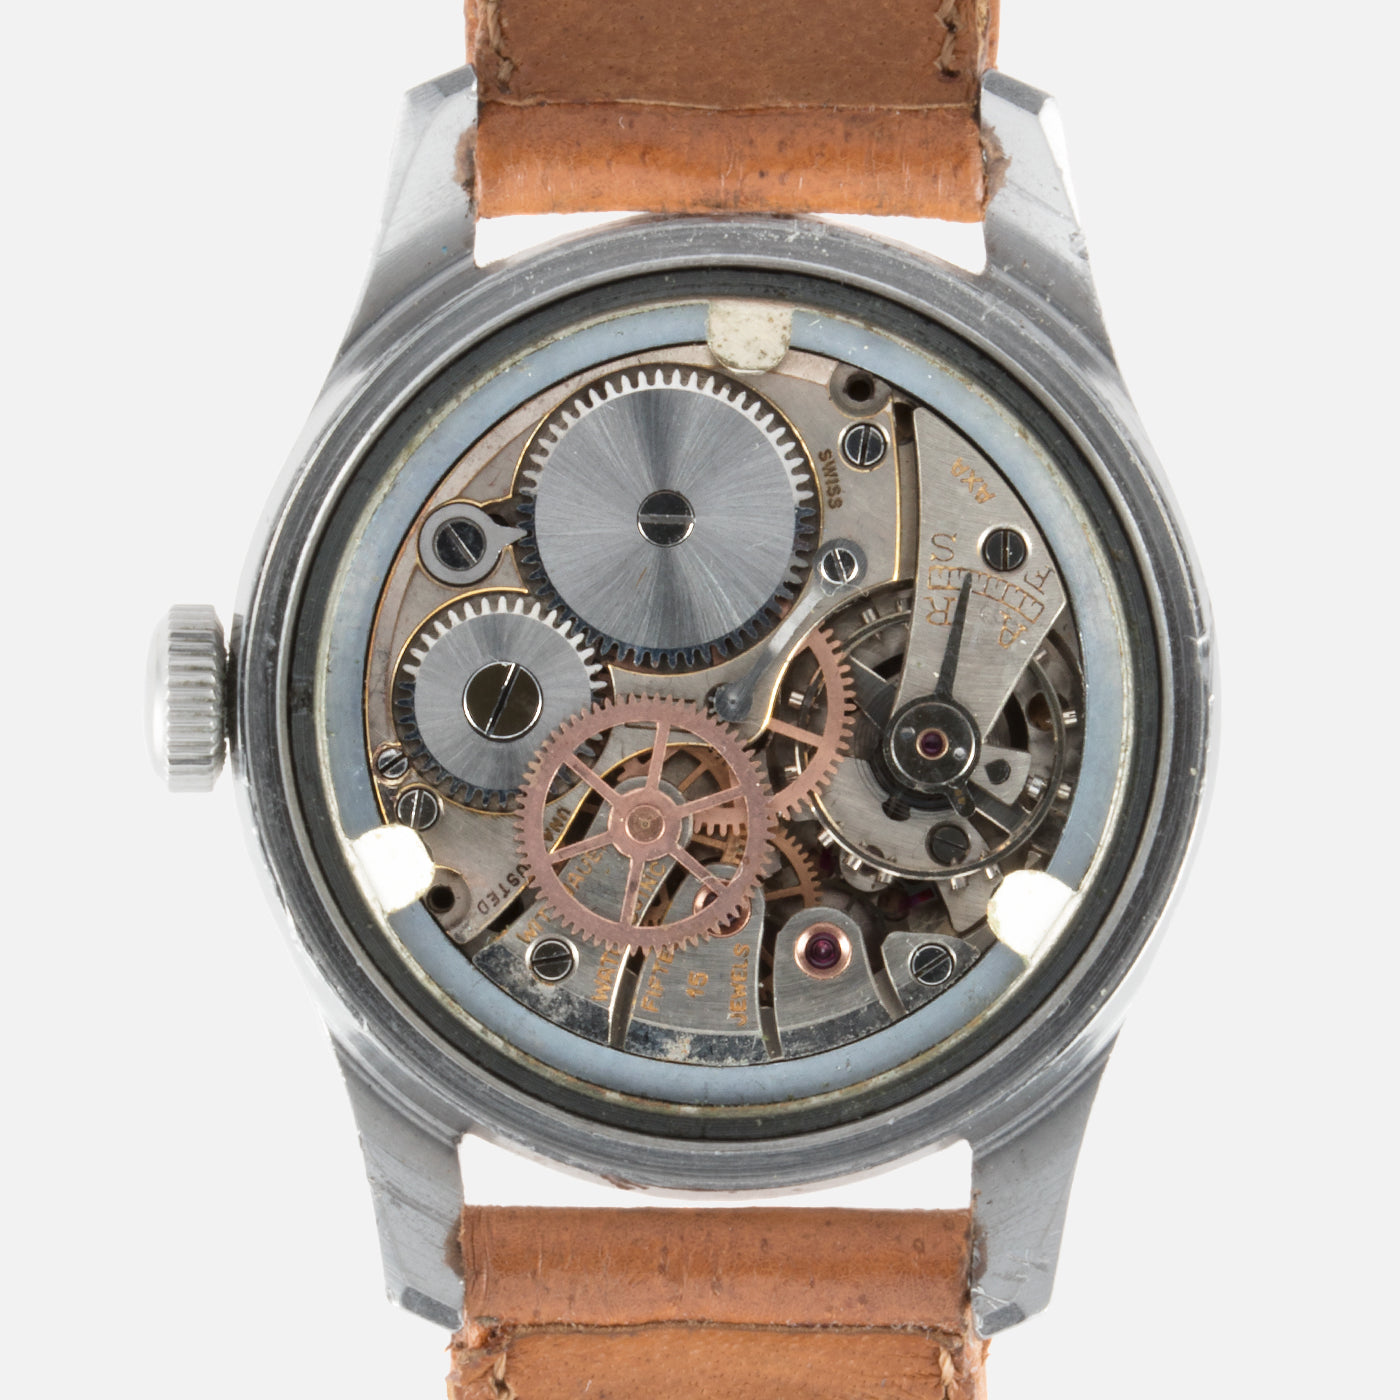 Wittnauer Stepped Case 24 Hr Dial